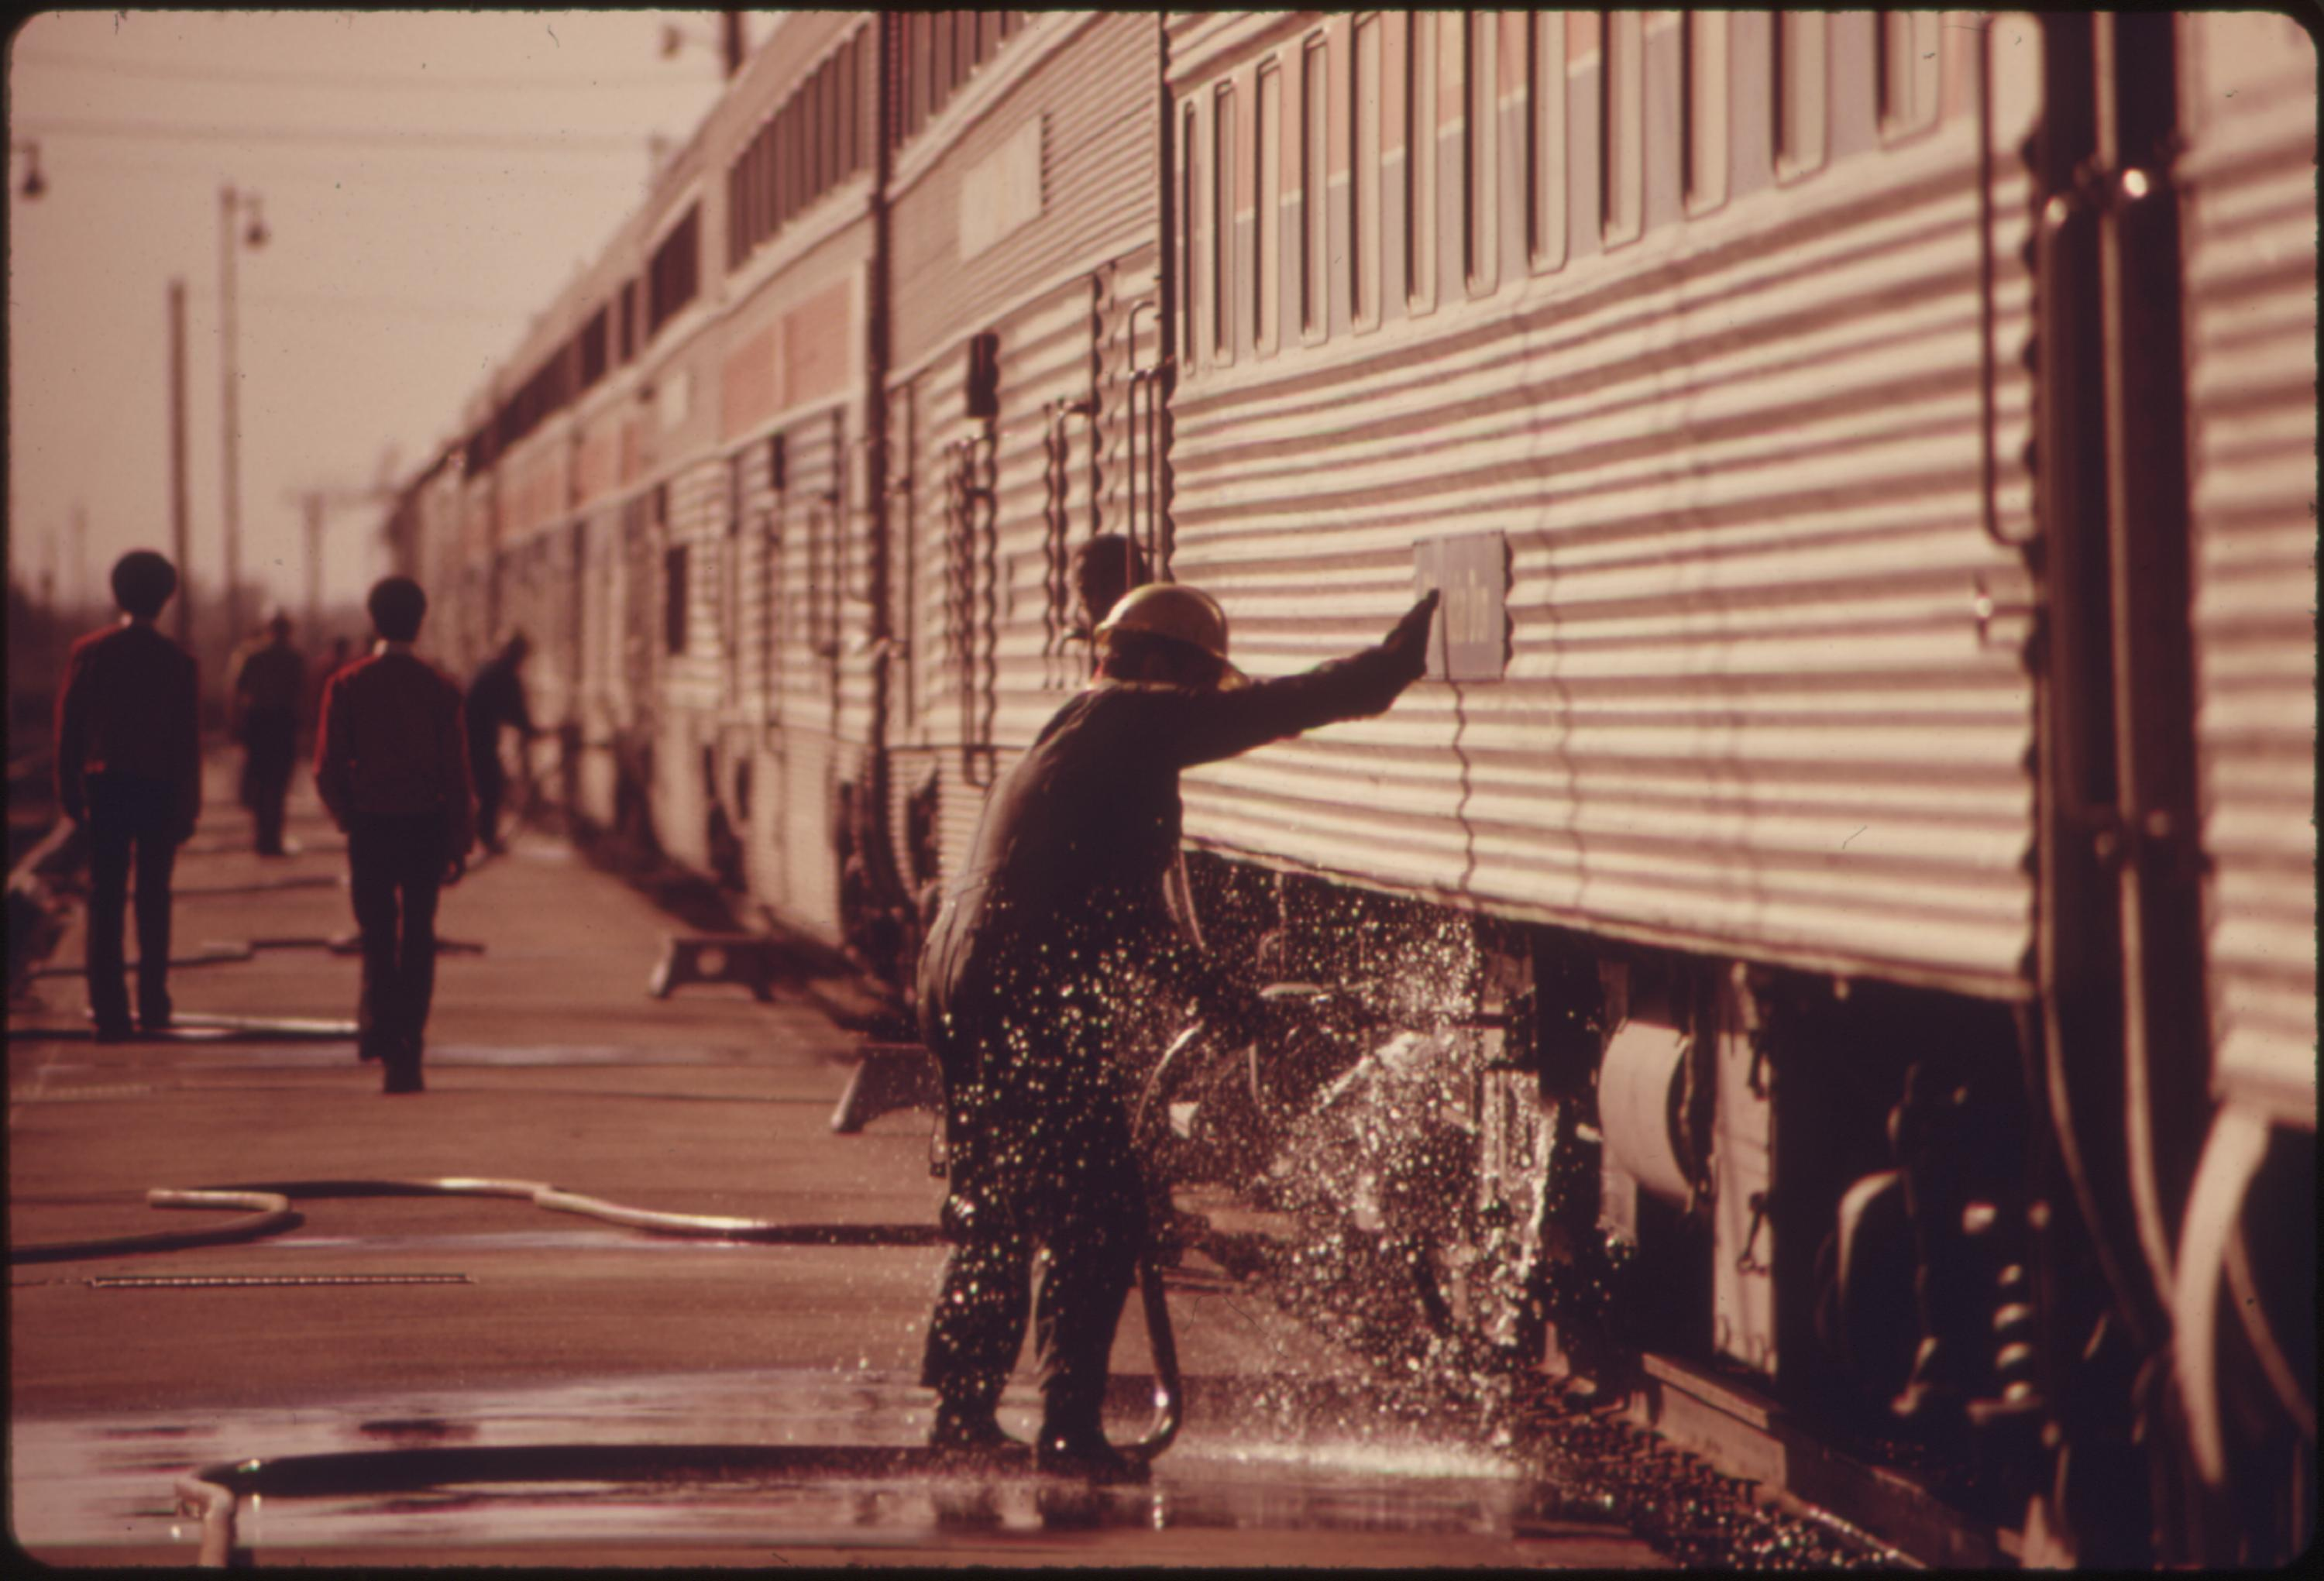 The Southwest Limited, an overnight train from Los Angeles California to Albuquerque, New Mexico makes an early morning stop at Winslow, Arizona for a change of engineer, conductors and brakemen, June 1974